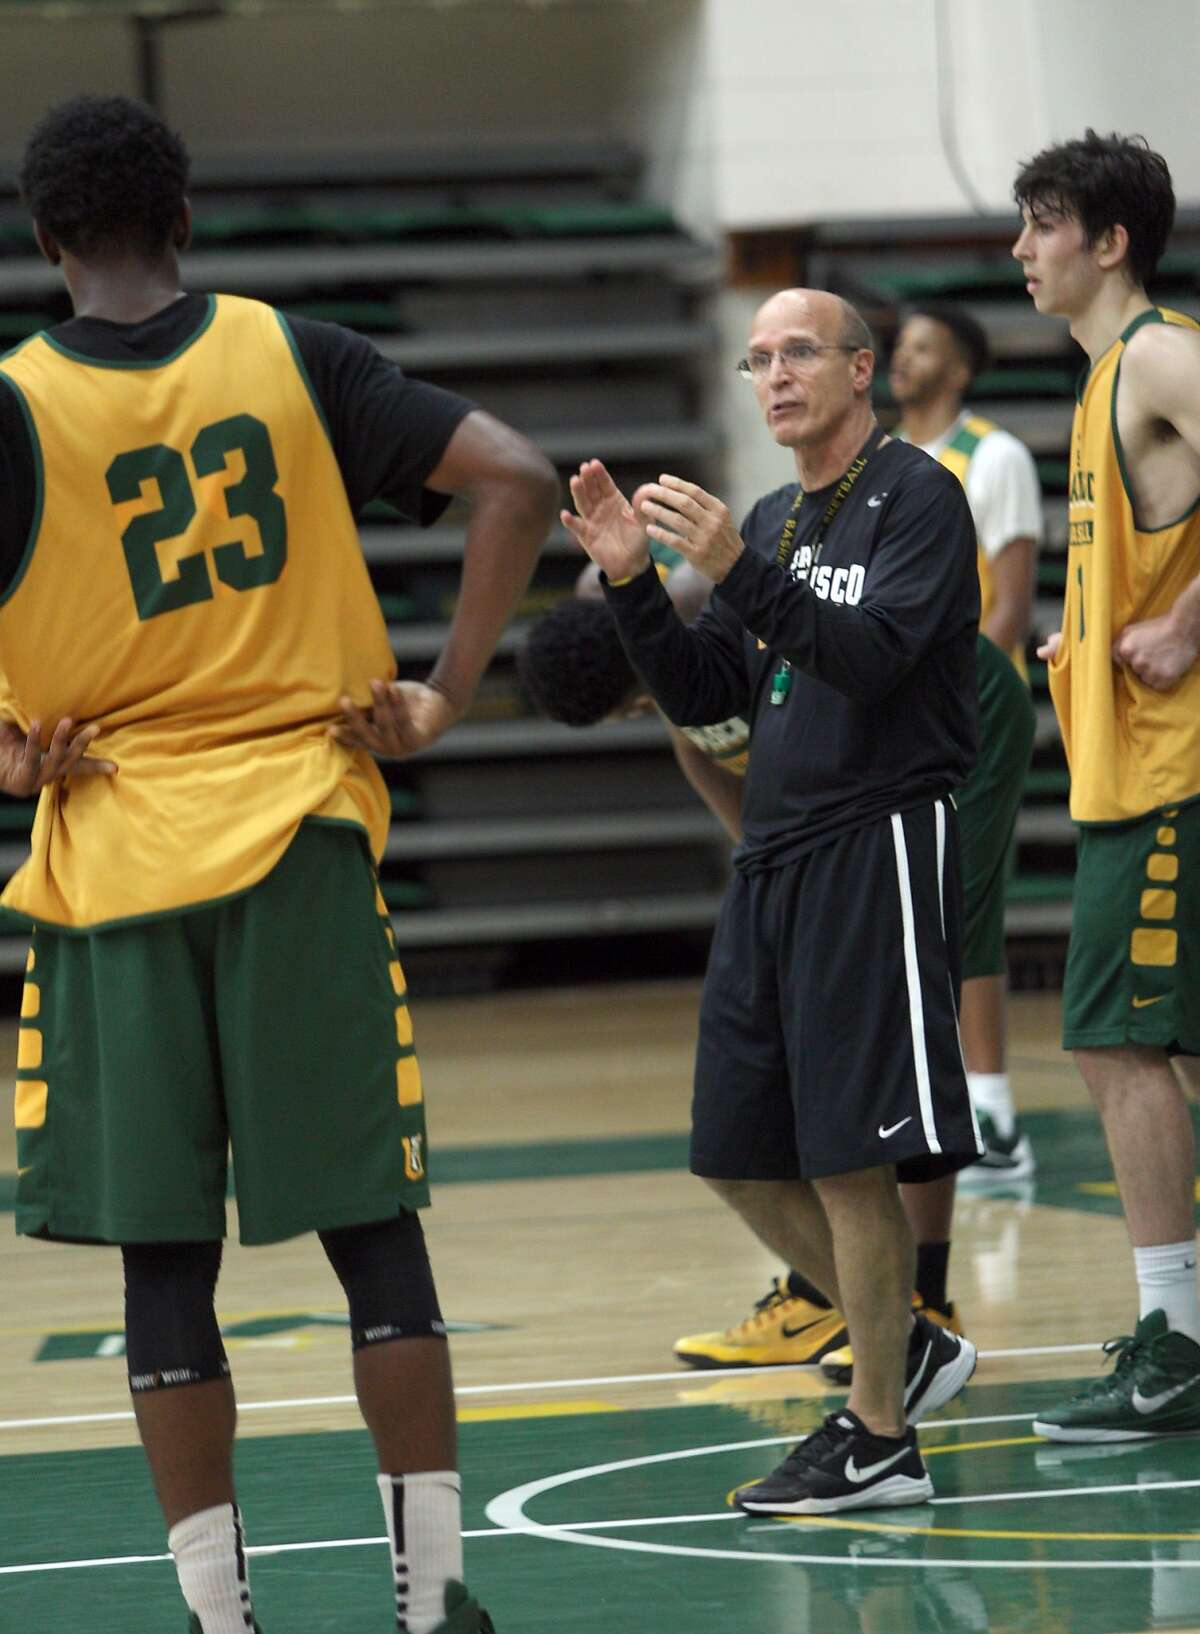 Associate Coach Frank Allocco discuss plays with the team during practice at the USF Memorial Gym October 13, 2015.